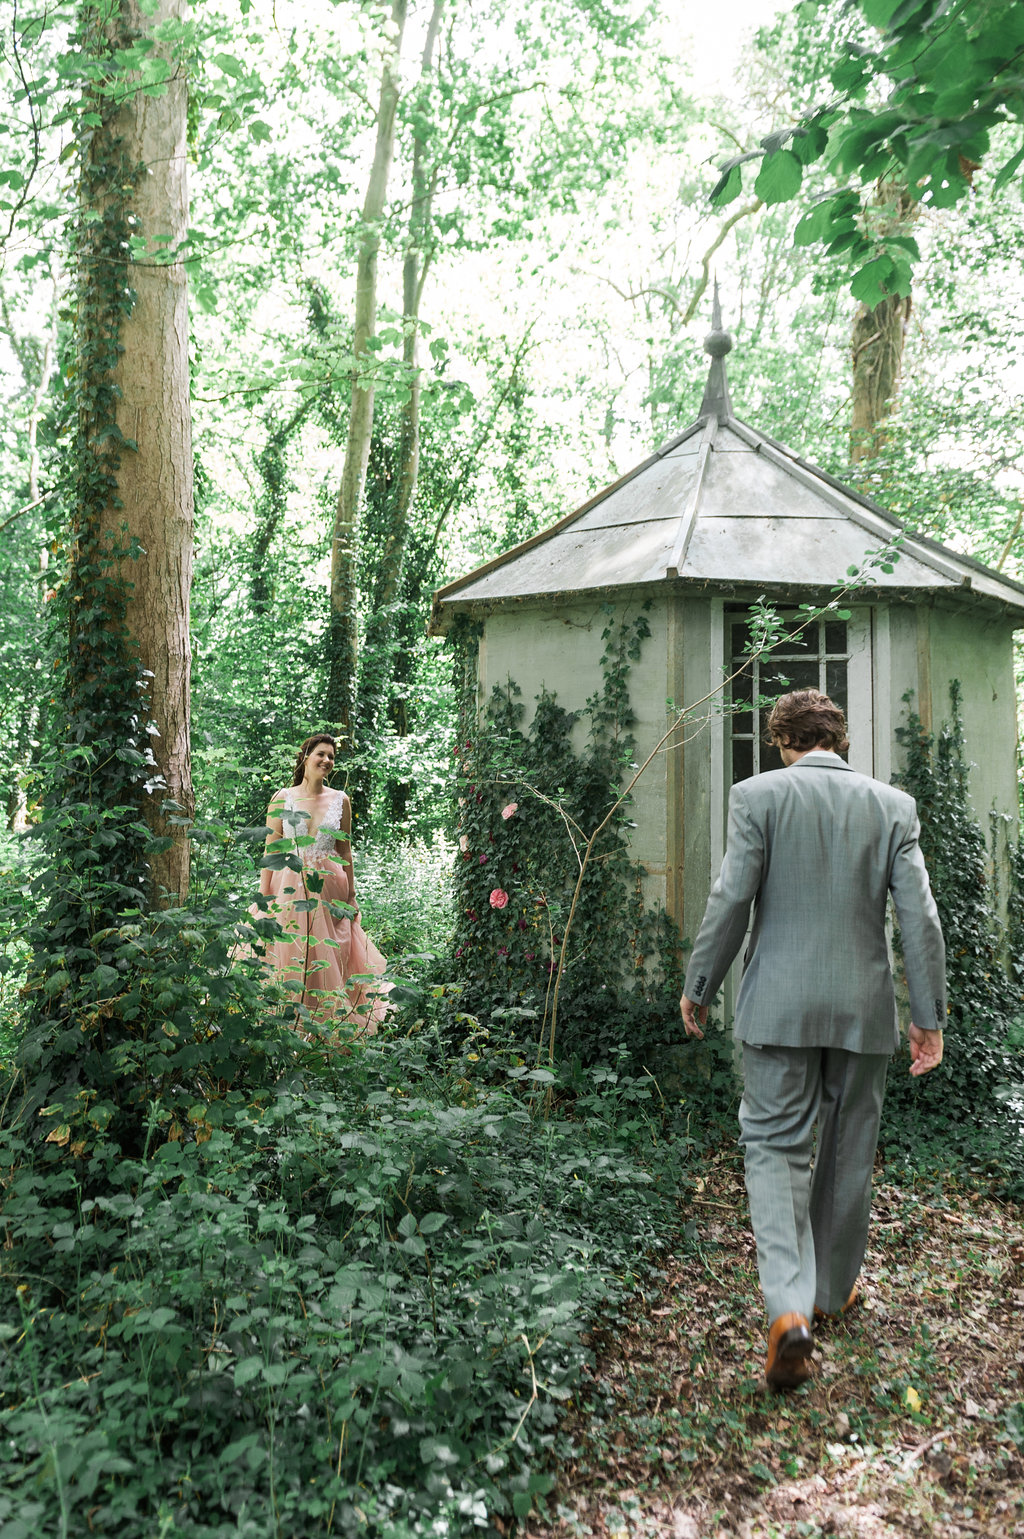 Dark Fairytale inspired Wedding - Wit Photography - Isle de L'Authie France - woods - groom walking